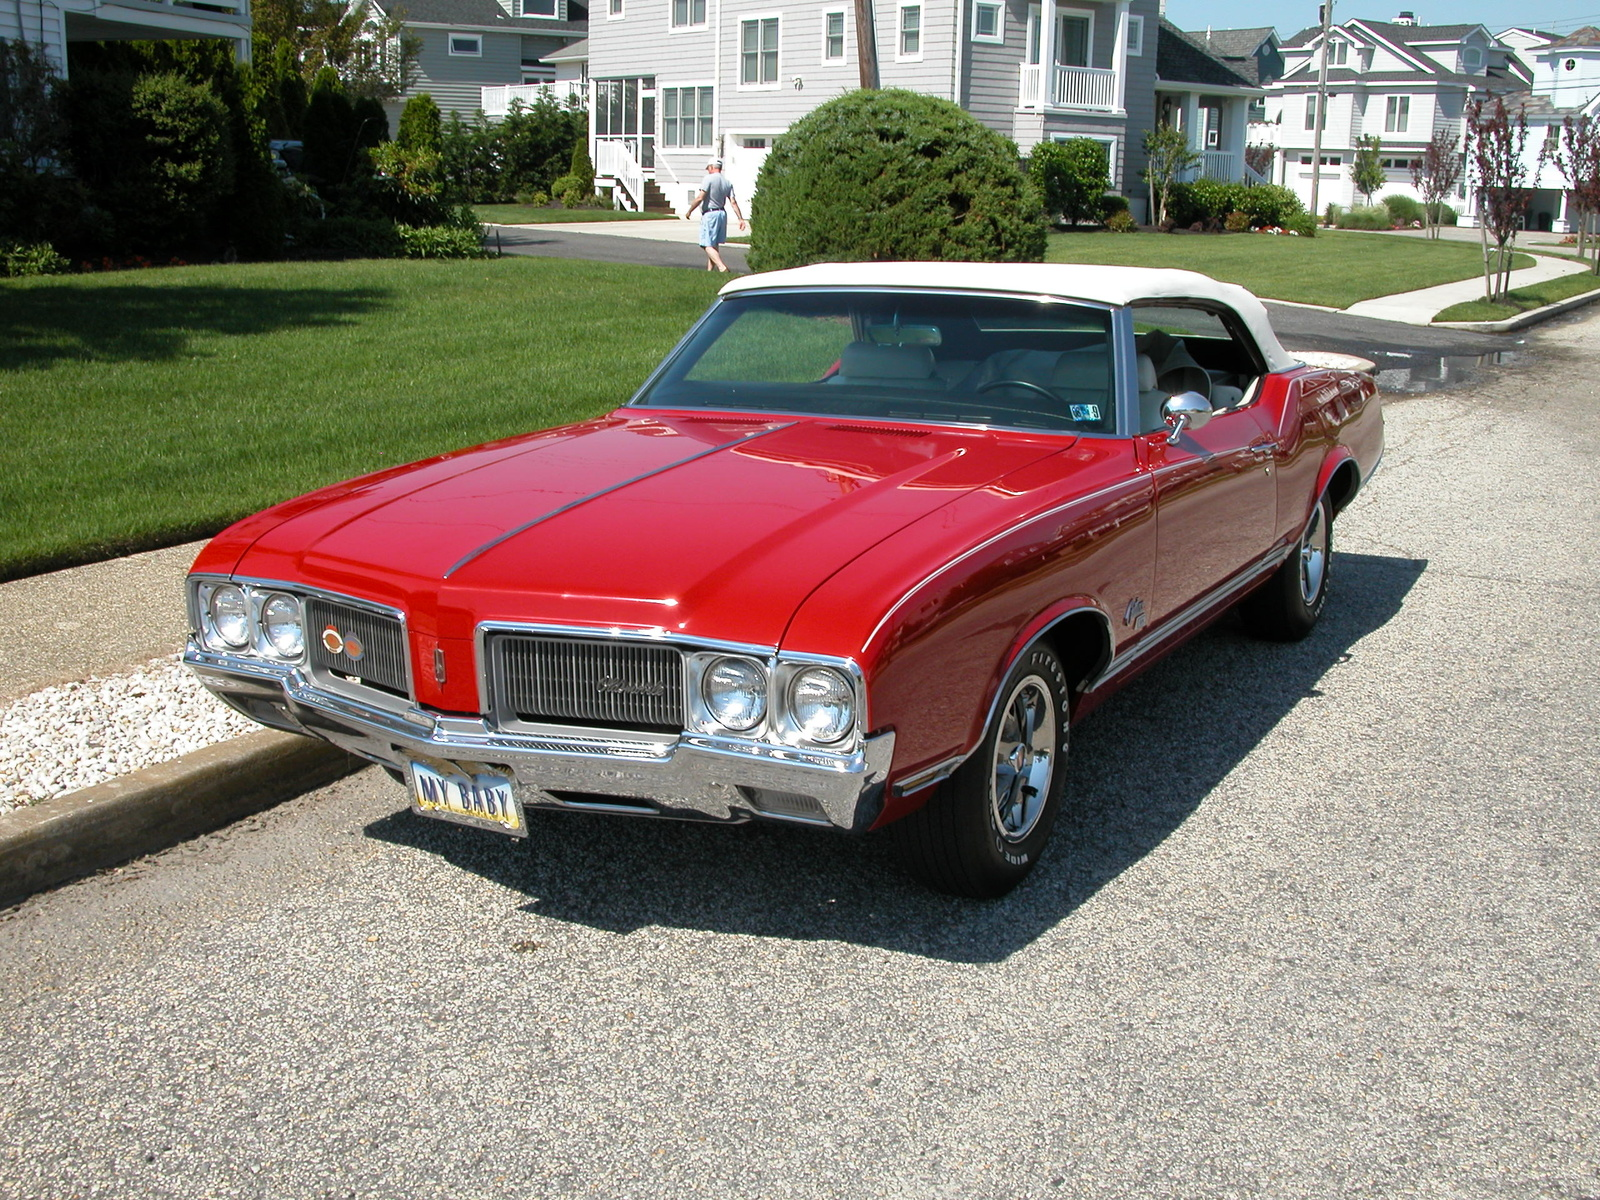 1967 Oldsmobile Cutlass Supreme Overview C8814 likewise 1977 Oldsmobile Toronado in addition 1970 Oldsmobile Cutlass Supreme Pictures C8817 pi35698799 furthermore 1979 Oldsmobile Cutlass Pictures C8779 pi36603557 further Oldsmobile Cutlass Station Wagon. on 1977 oldsmobile starfire